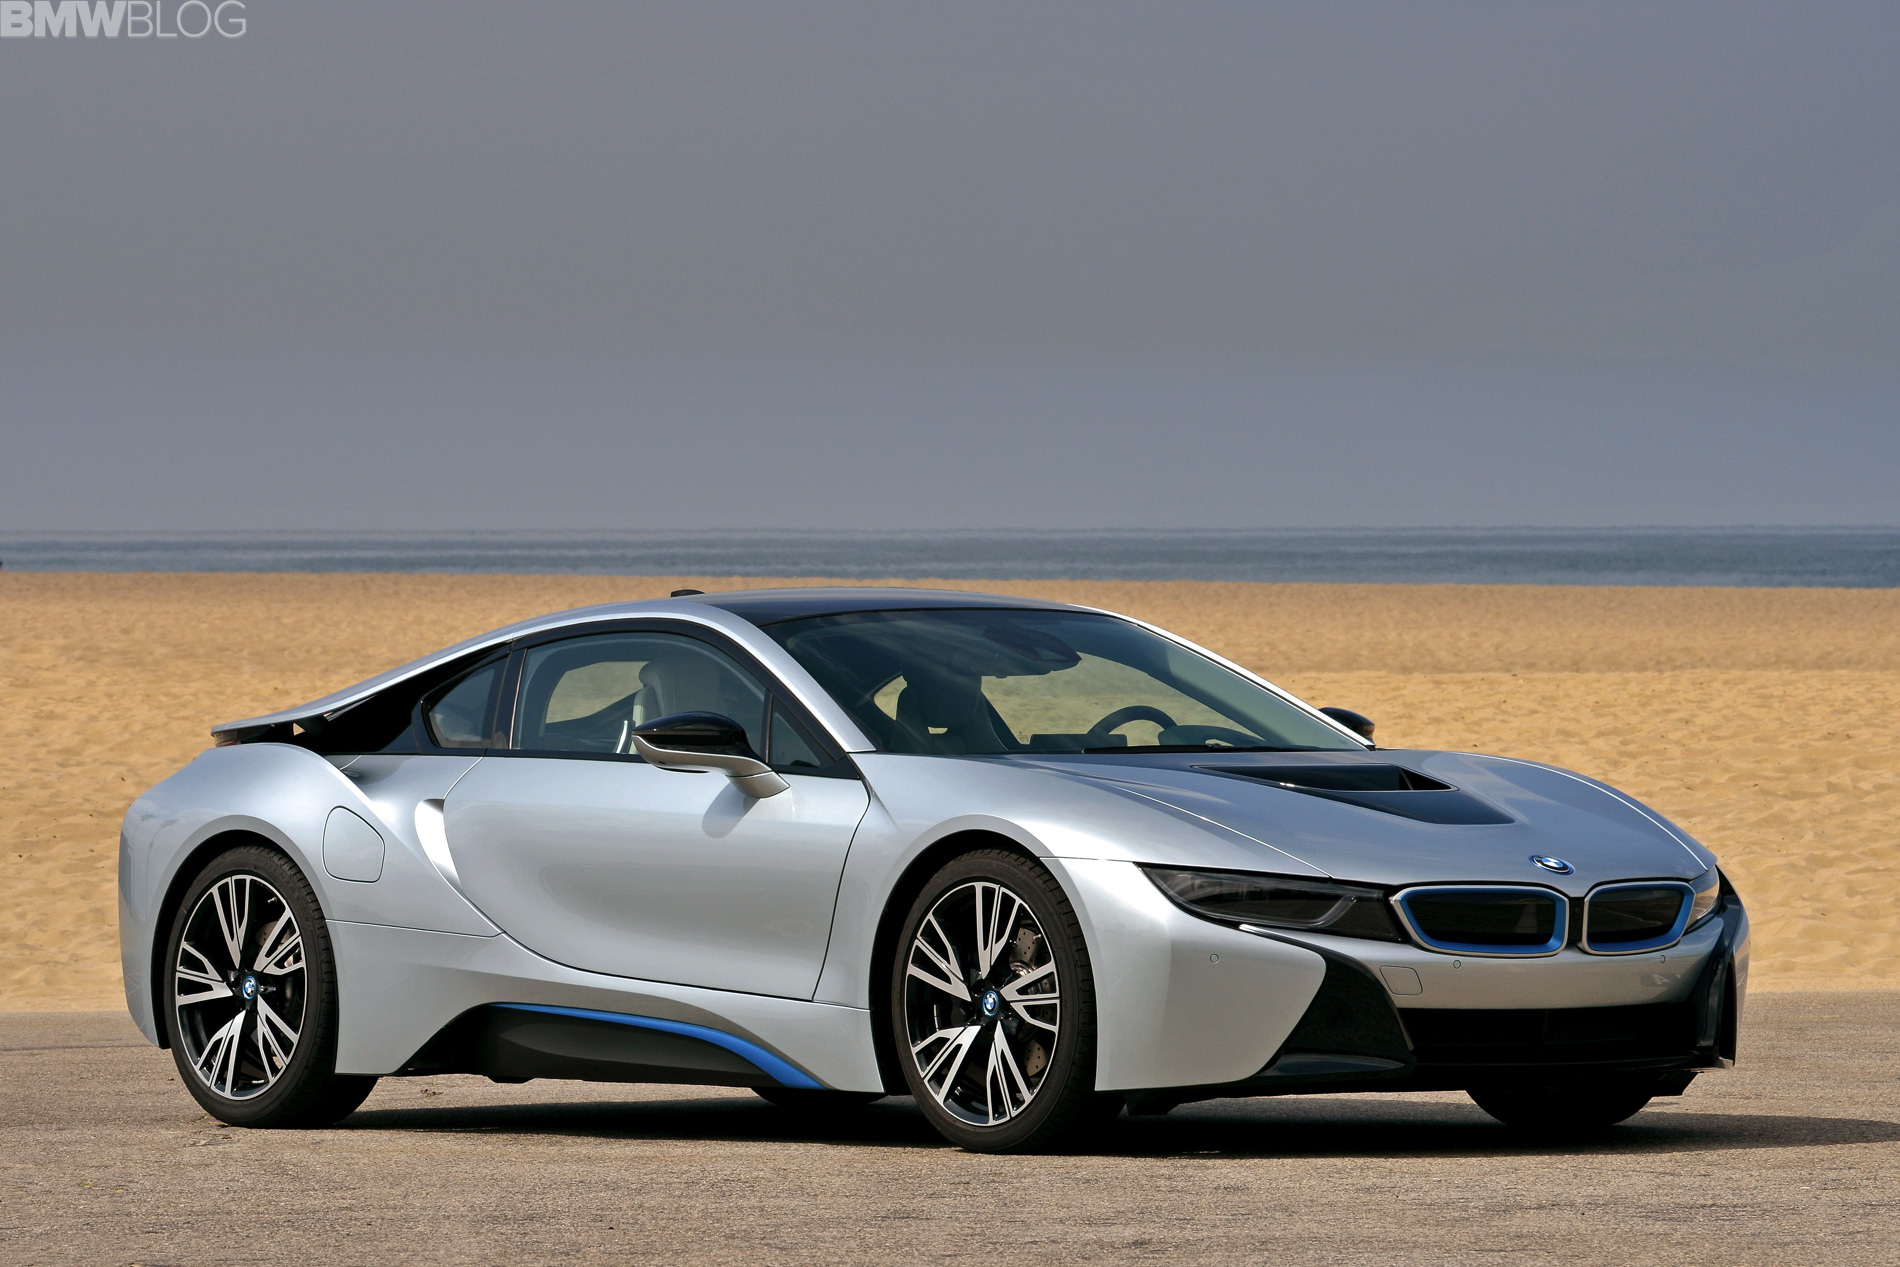 VIDEOS: 2015 BMW i8 in Los Angeles